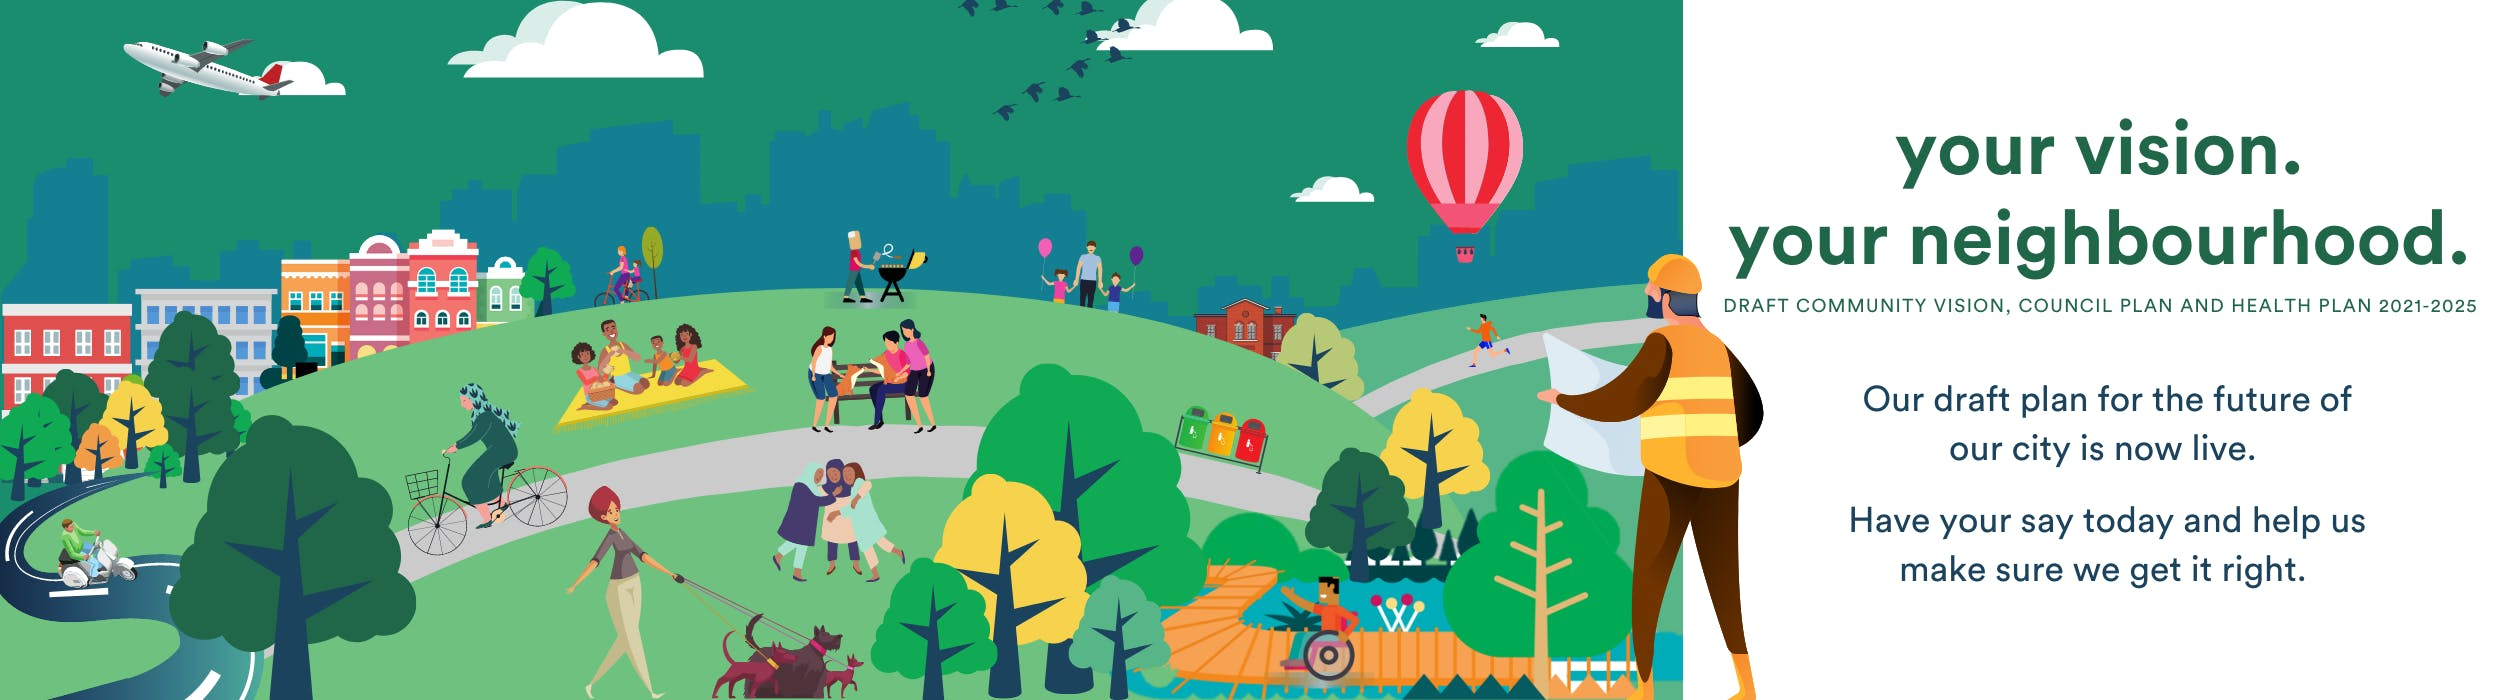 Draft Community Vision, Council Plan and Health Plan 2021-25 - Moonee Valley City Council